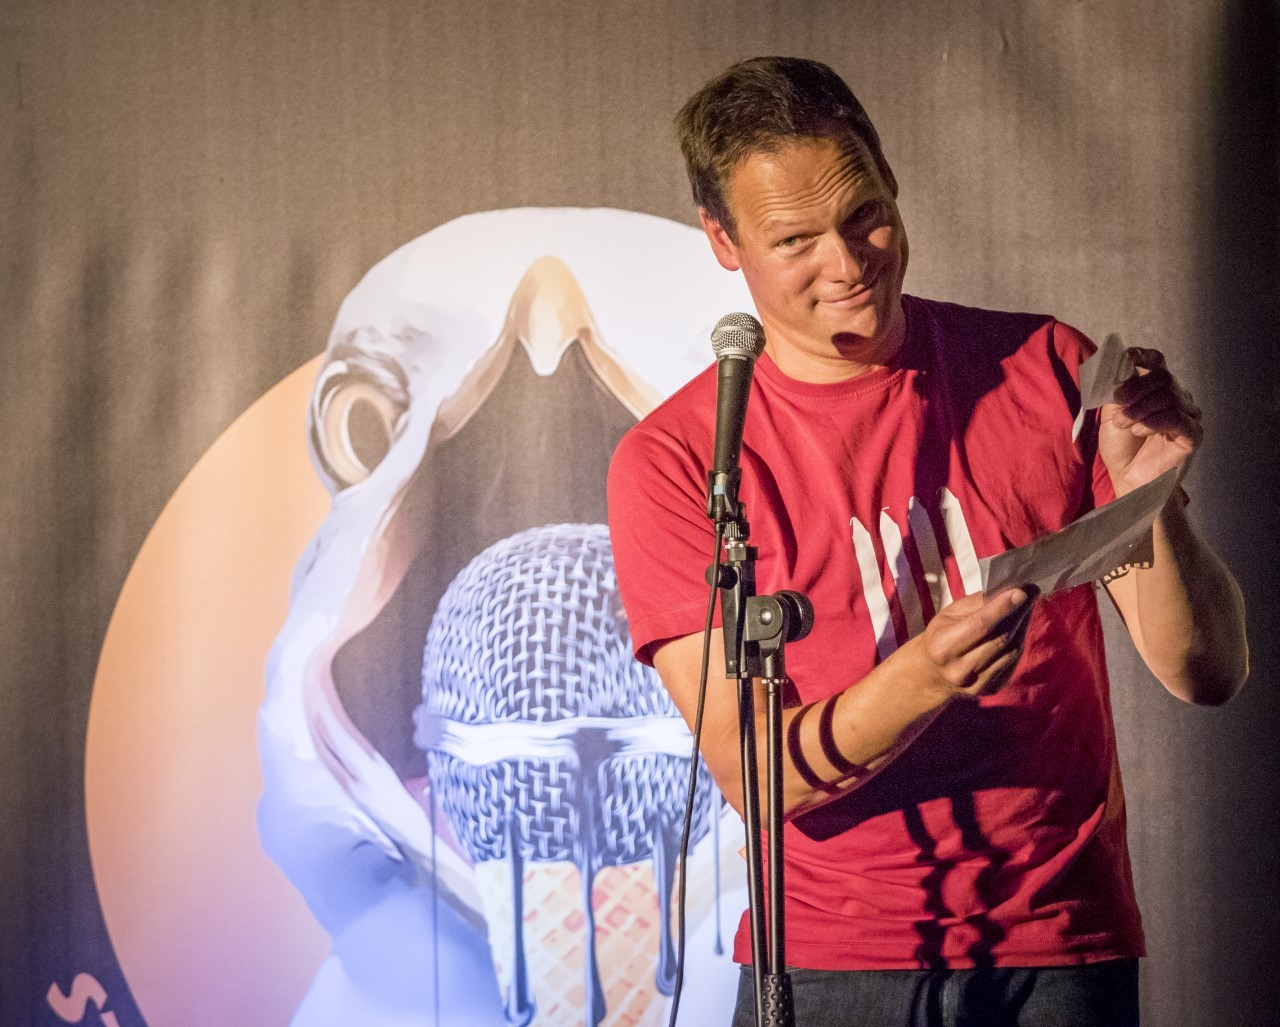 Stand-up at the Seaside's hard working compere David Rothnie